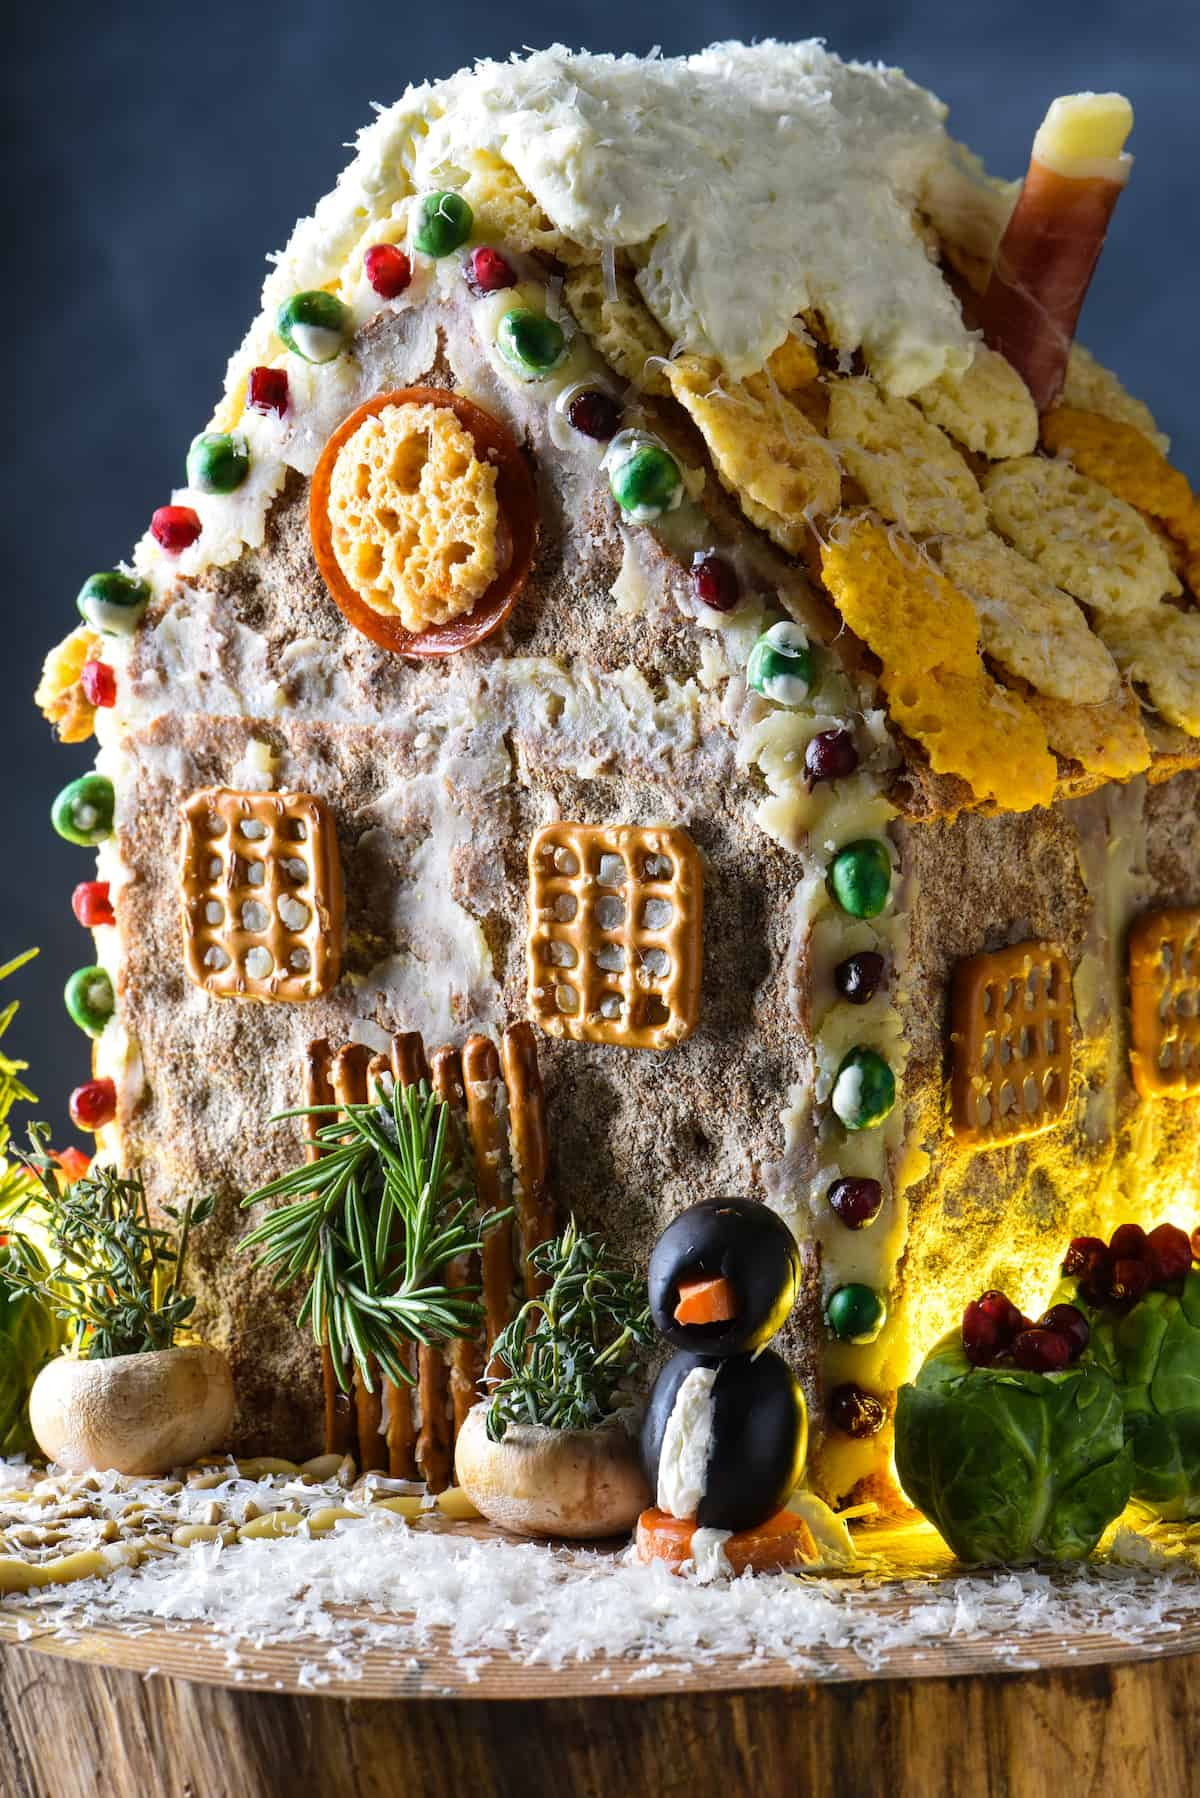 Shake up tradition this holiday season with this Holiday Cheese & Cracker House, which is like a savory gingerbread house. Get creative with things like cheese, crackers, pretzels, herbs and veggies!